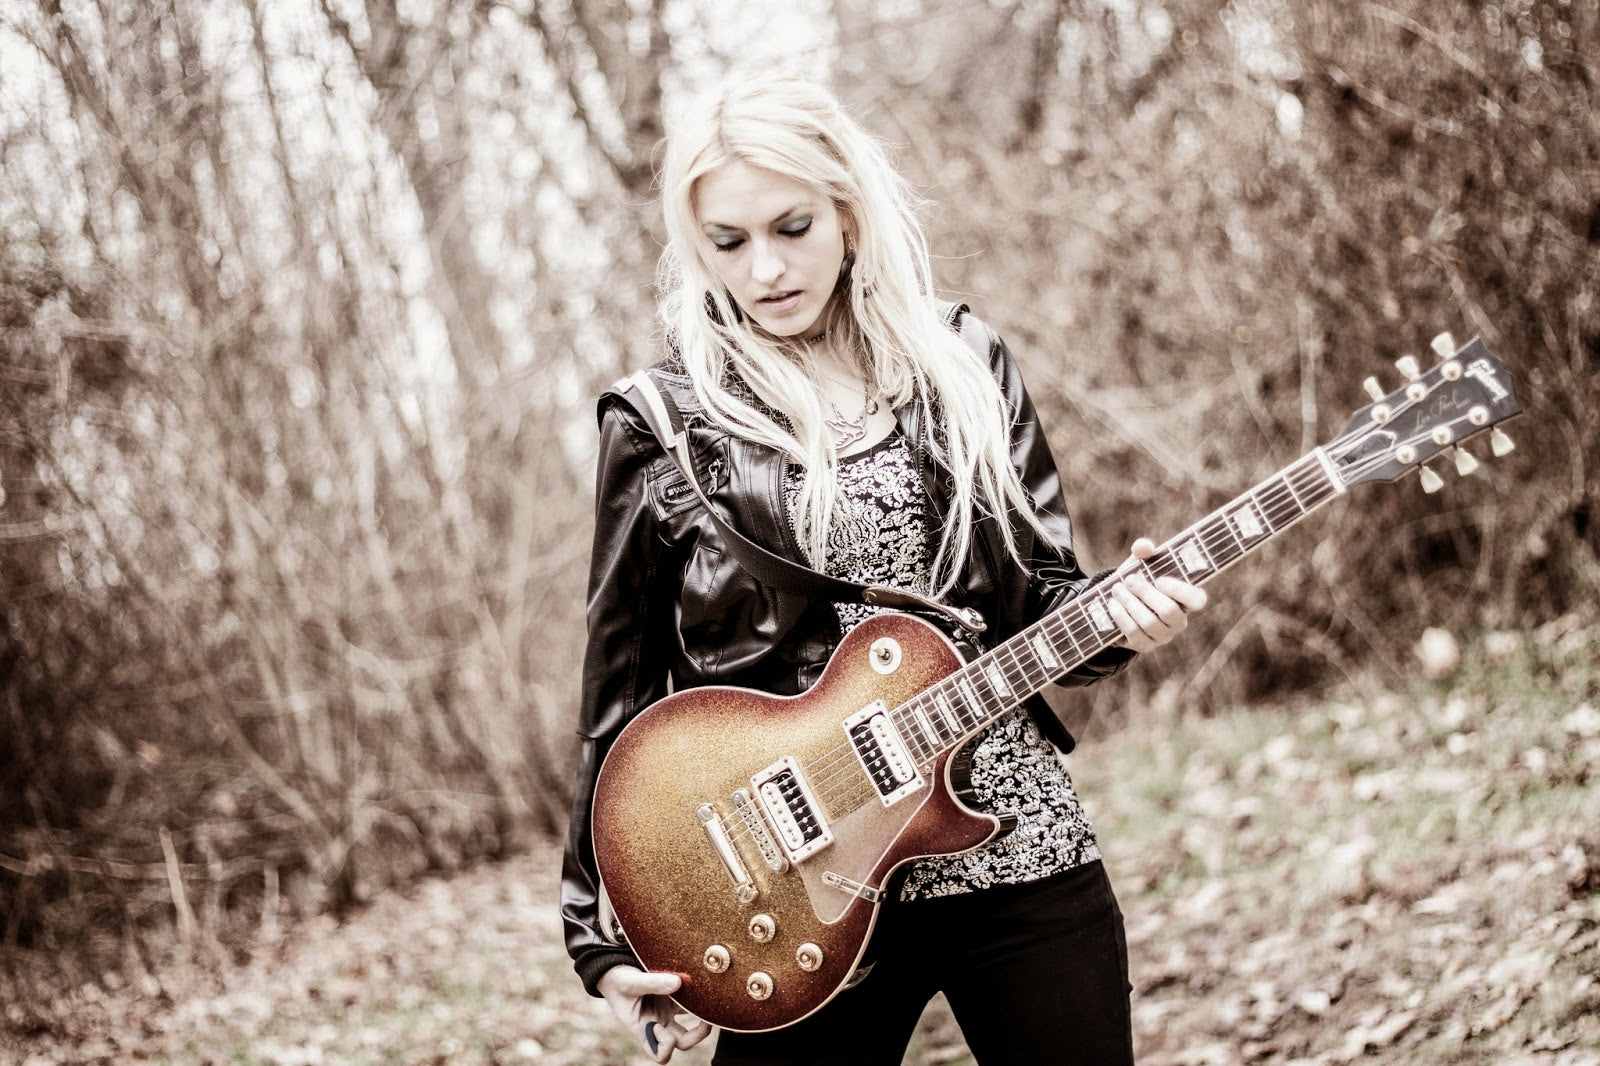 Emily Hastings holding an electric guitar